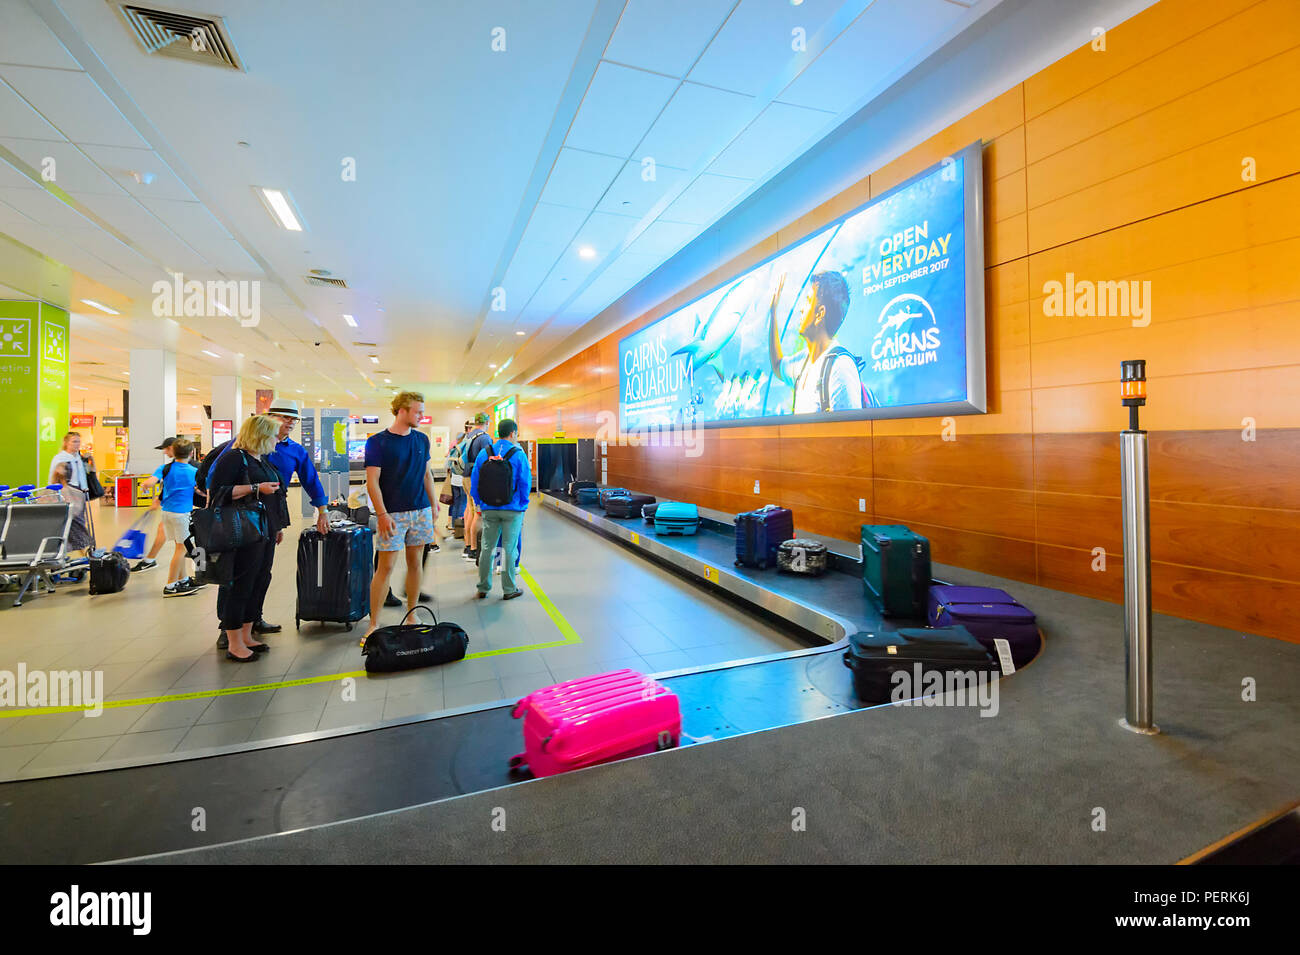 Baggage carousel at Cairns airport, Arrivals Terminal, Far North Queensland, FNQ, QLD, Australia - Stock Image